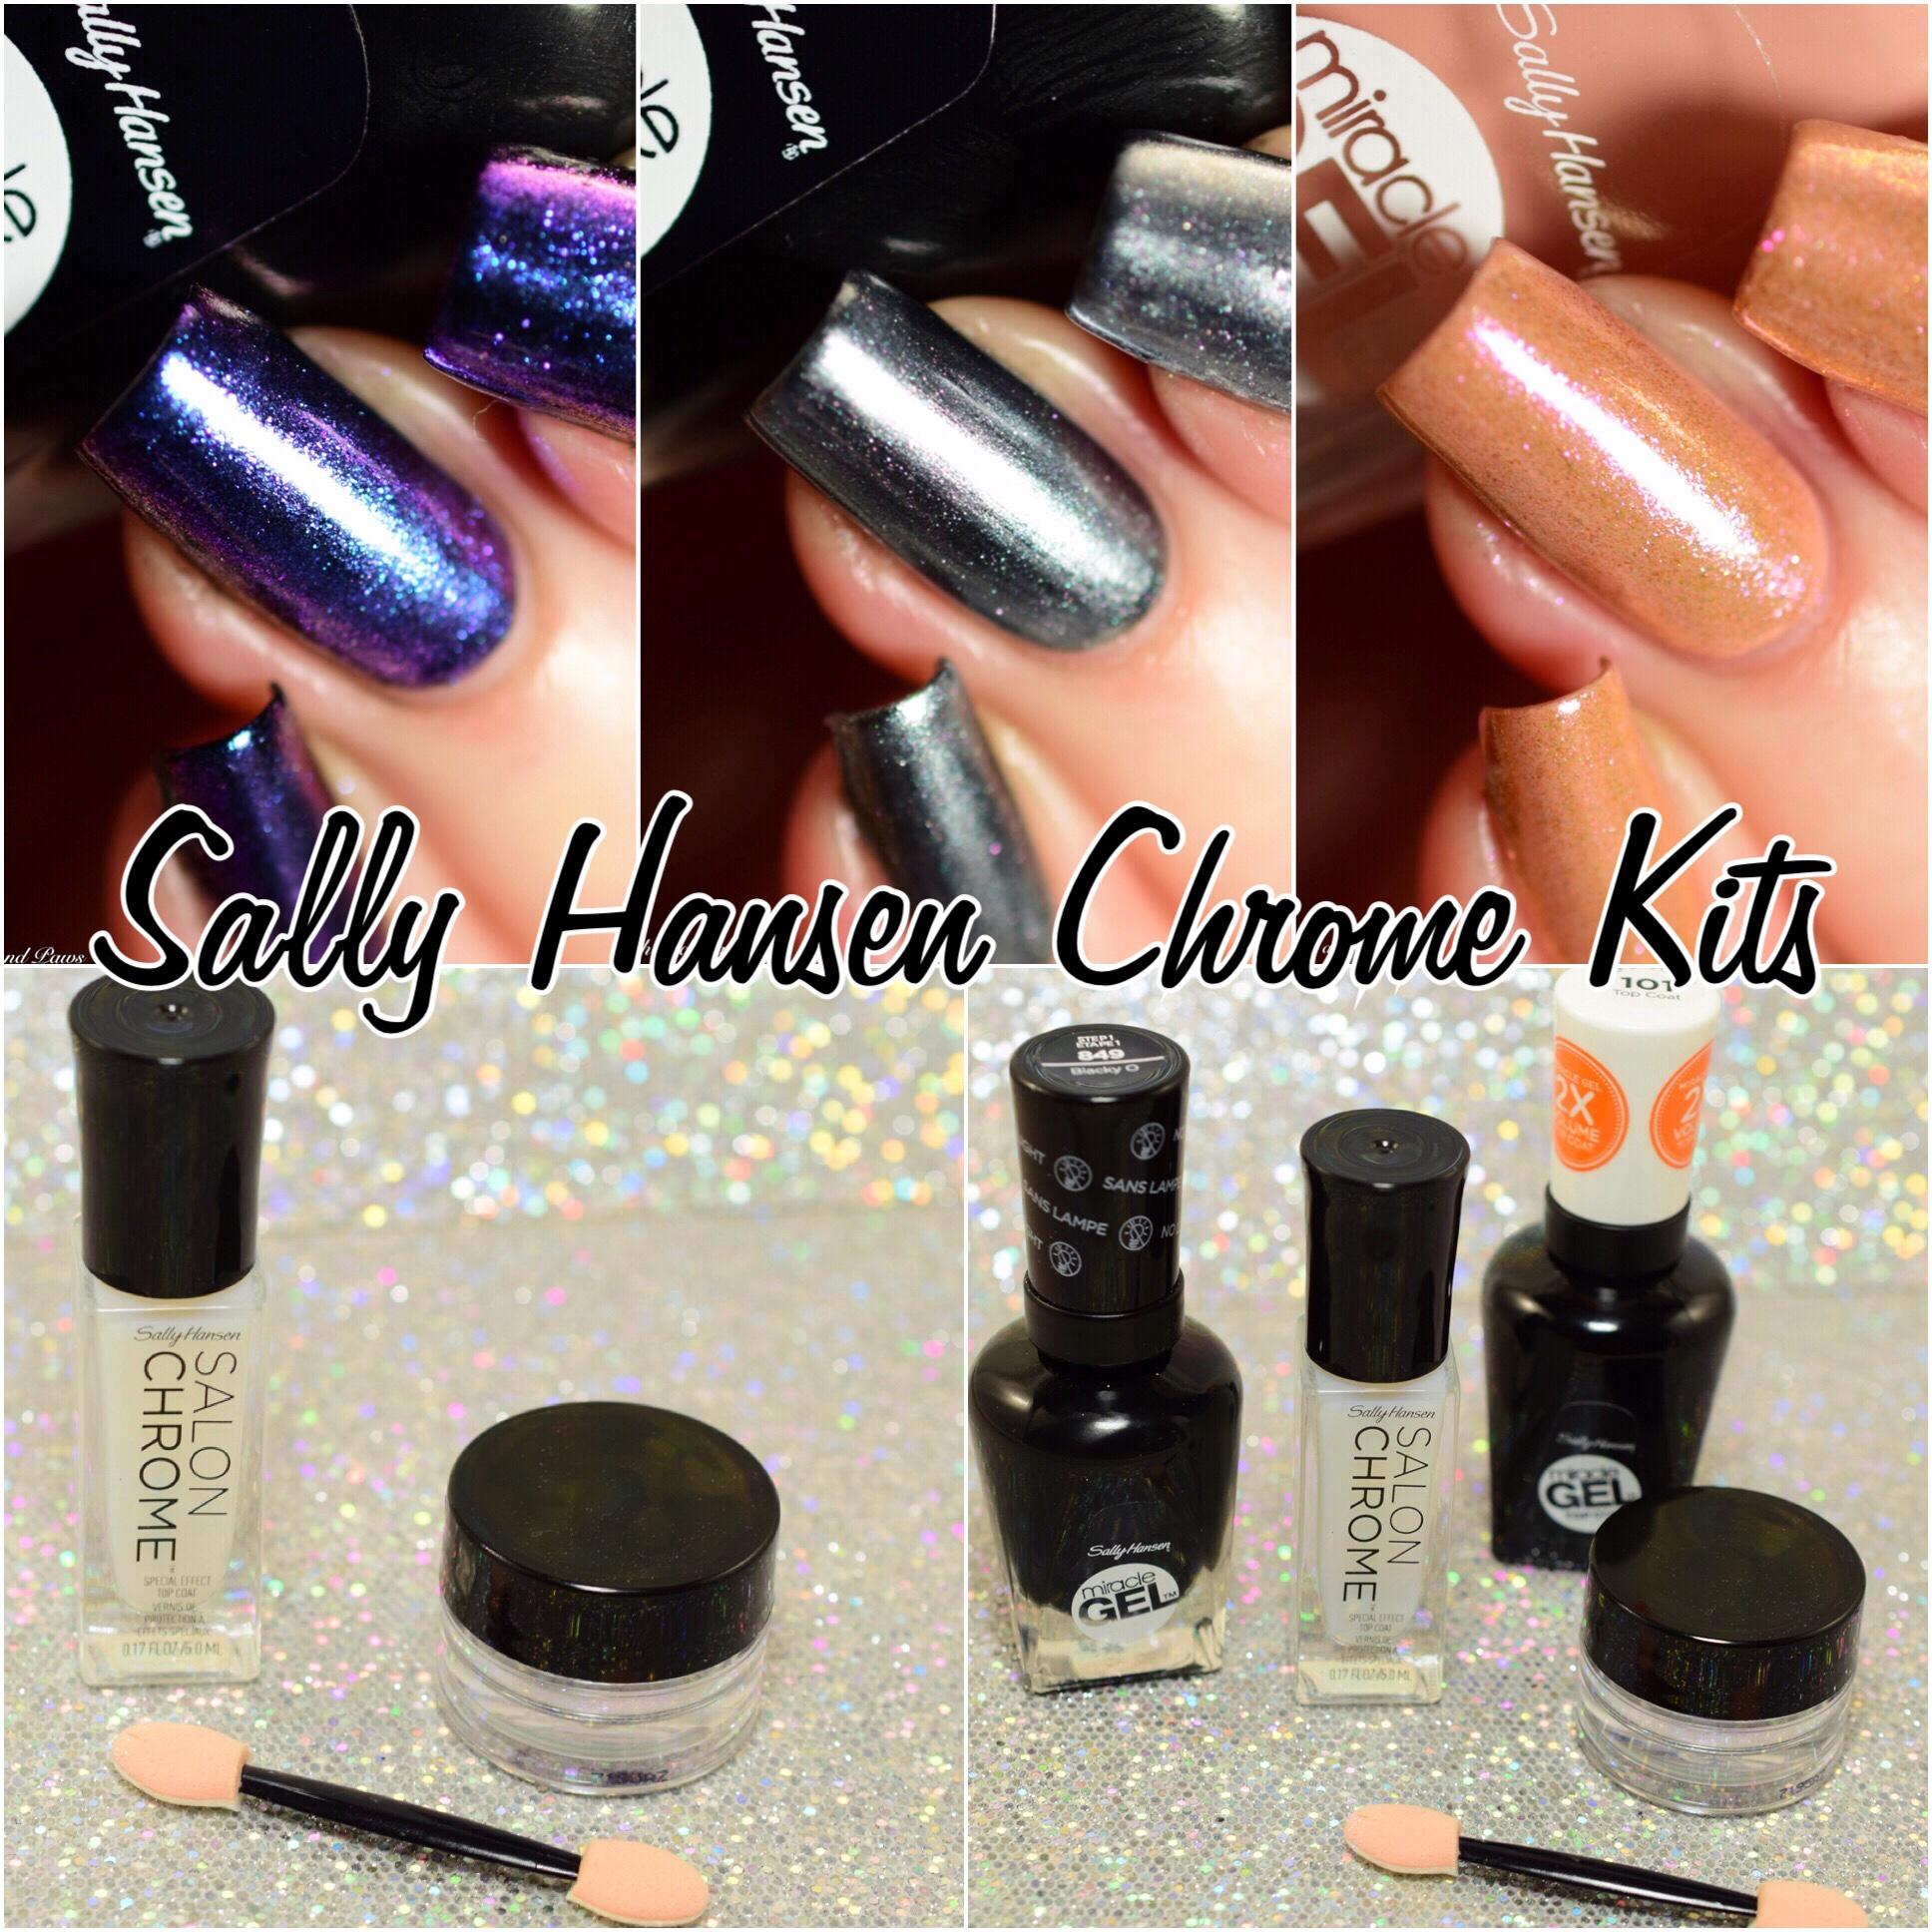 Sally Hansen Chrome Kits